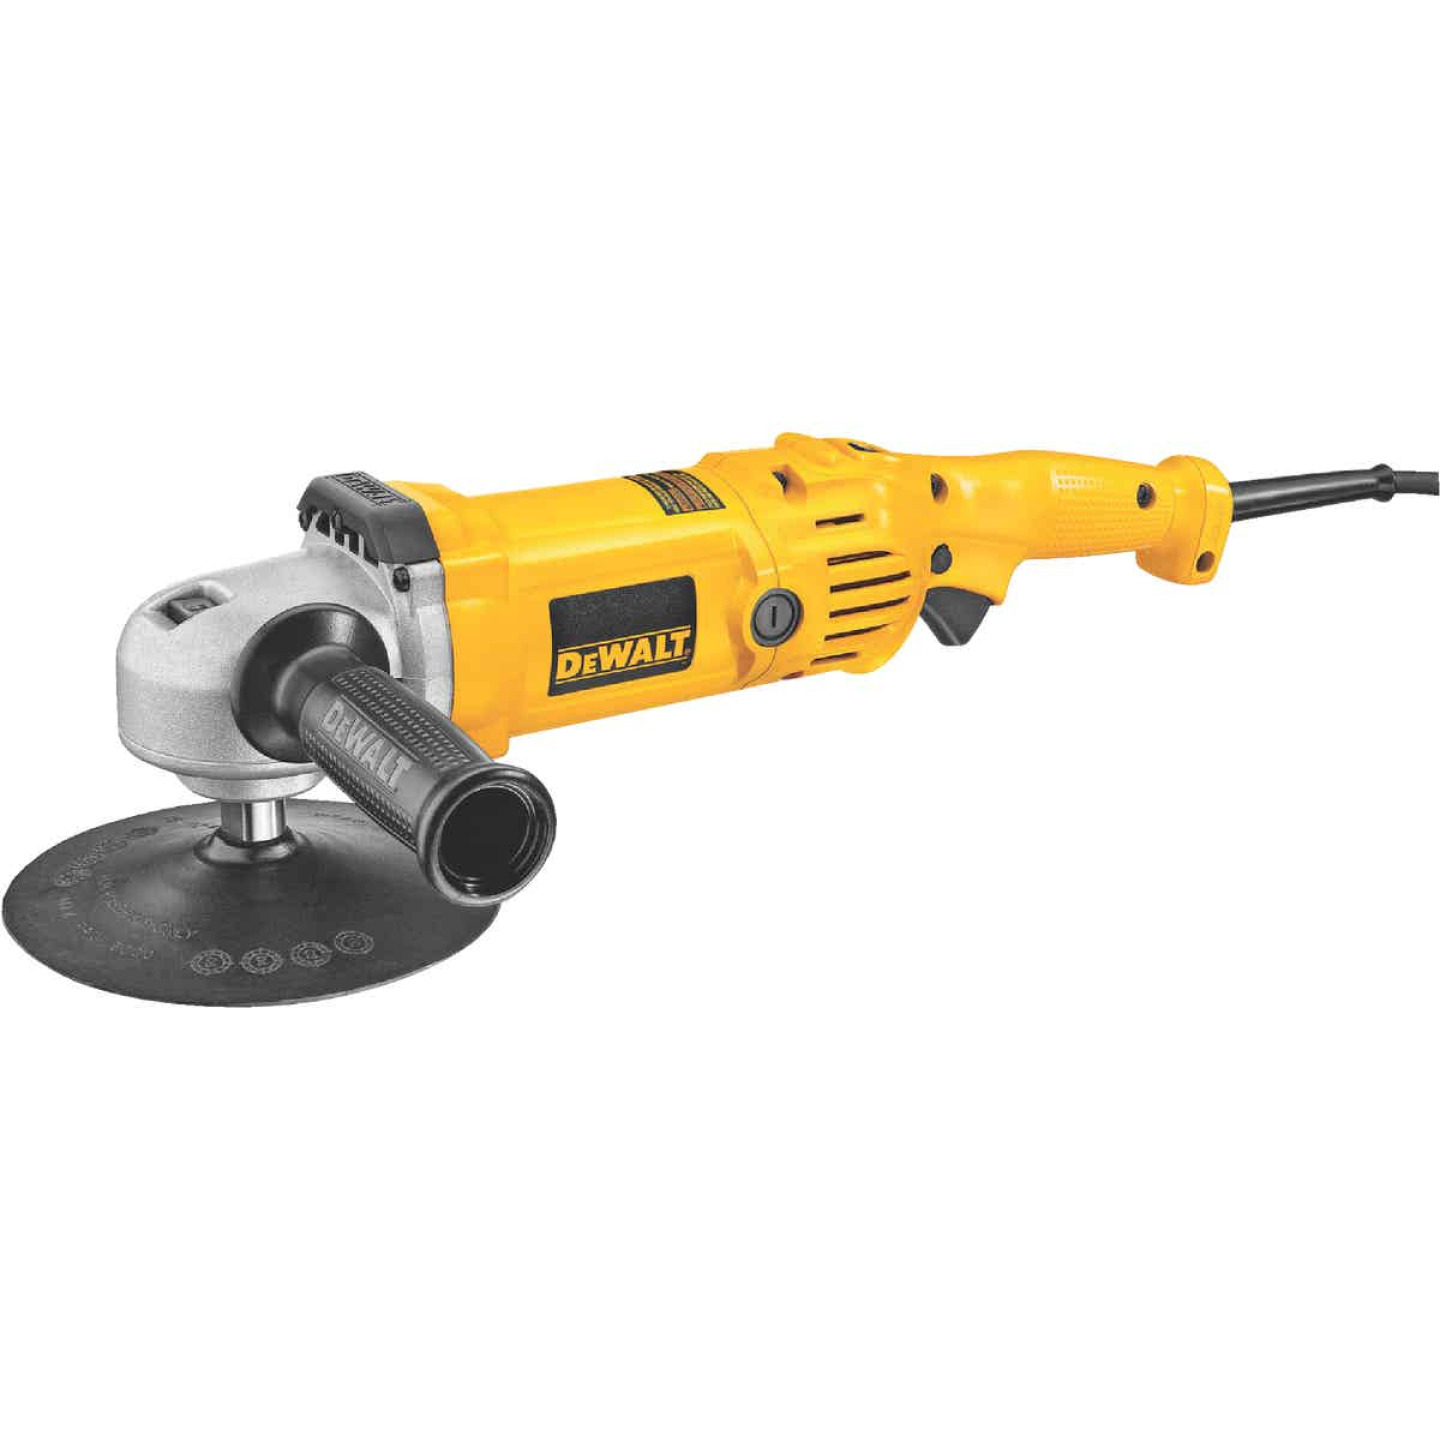 DeWalt 12-Amp 7 In./9 In. 3500 rpm Angle Polisher Sander Image 1